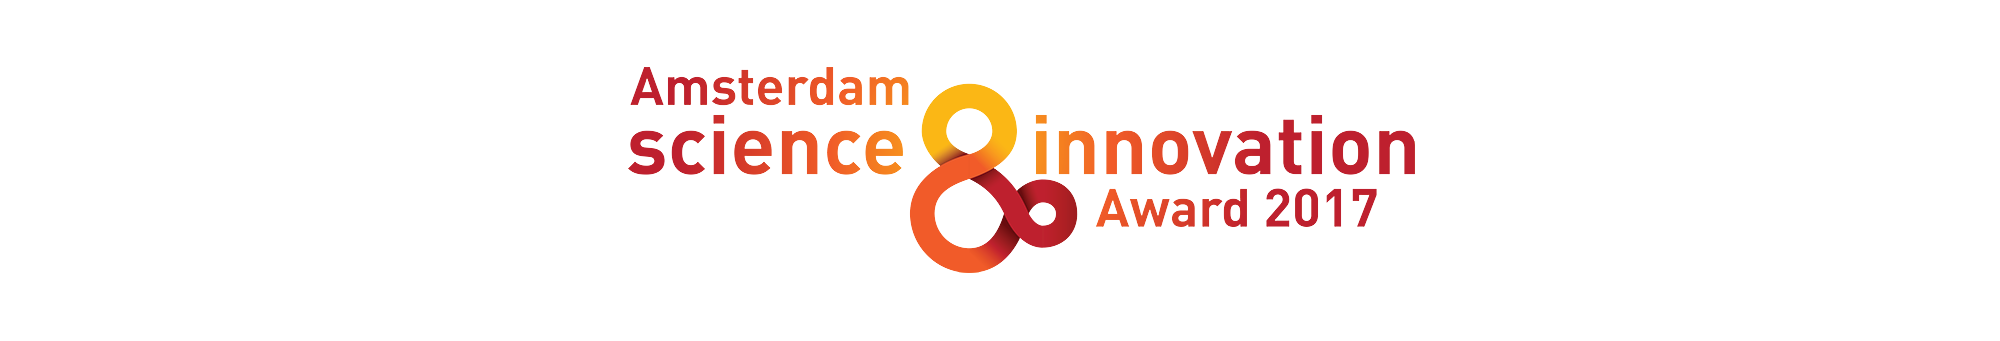 Amsterdam Science & Innovation Award